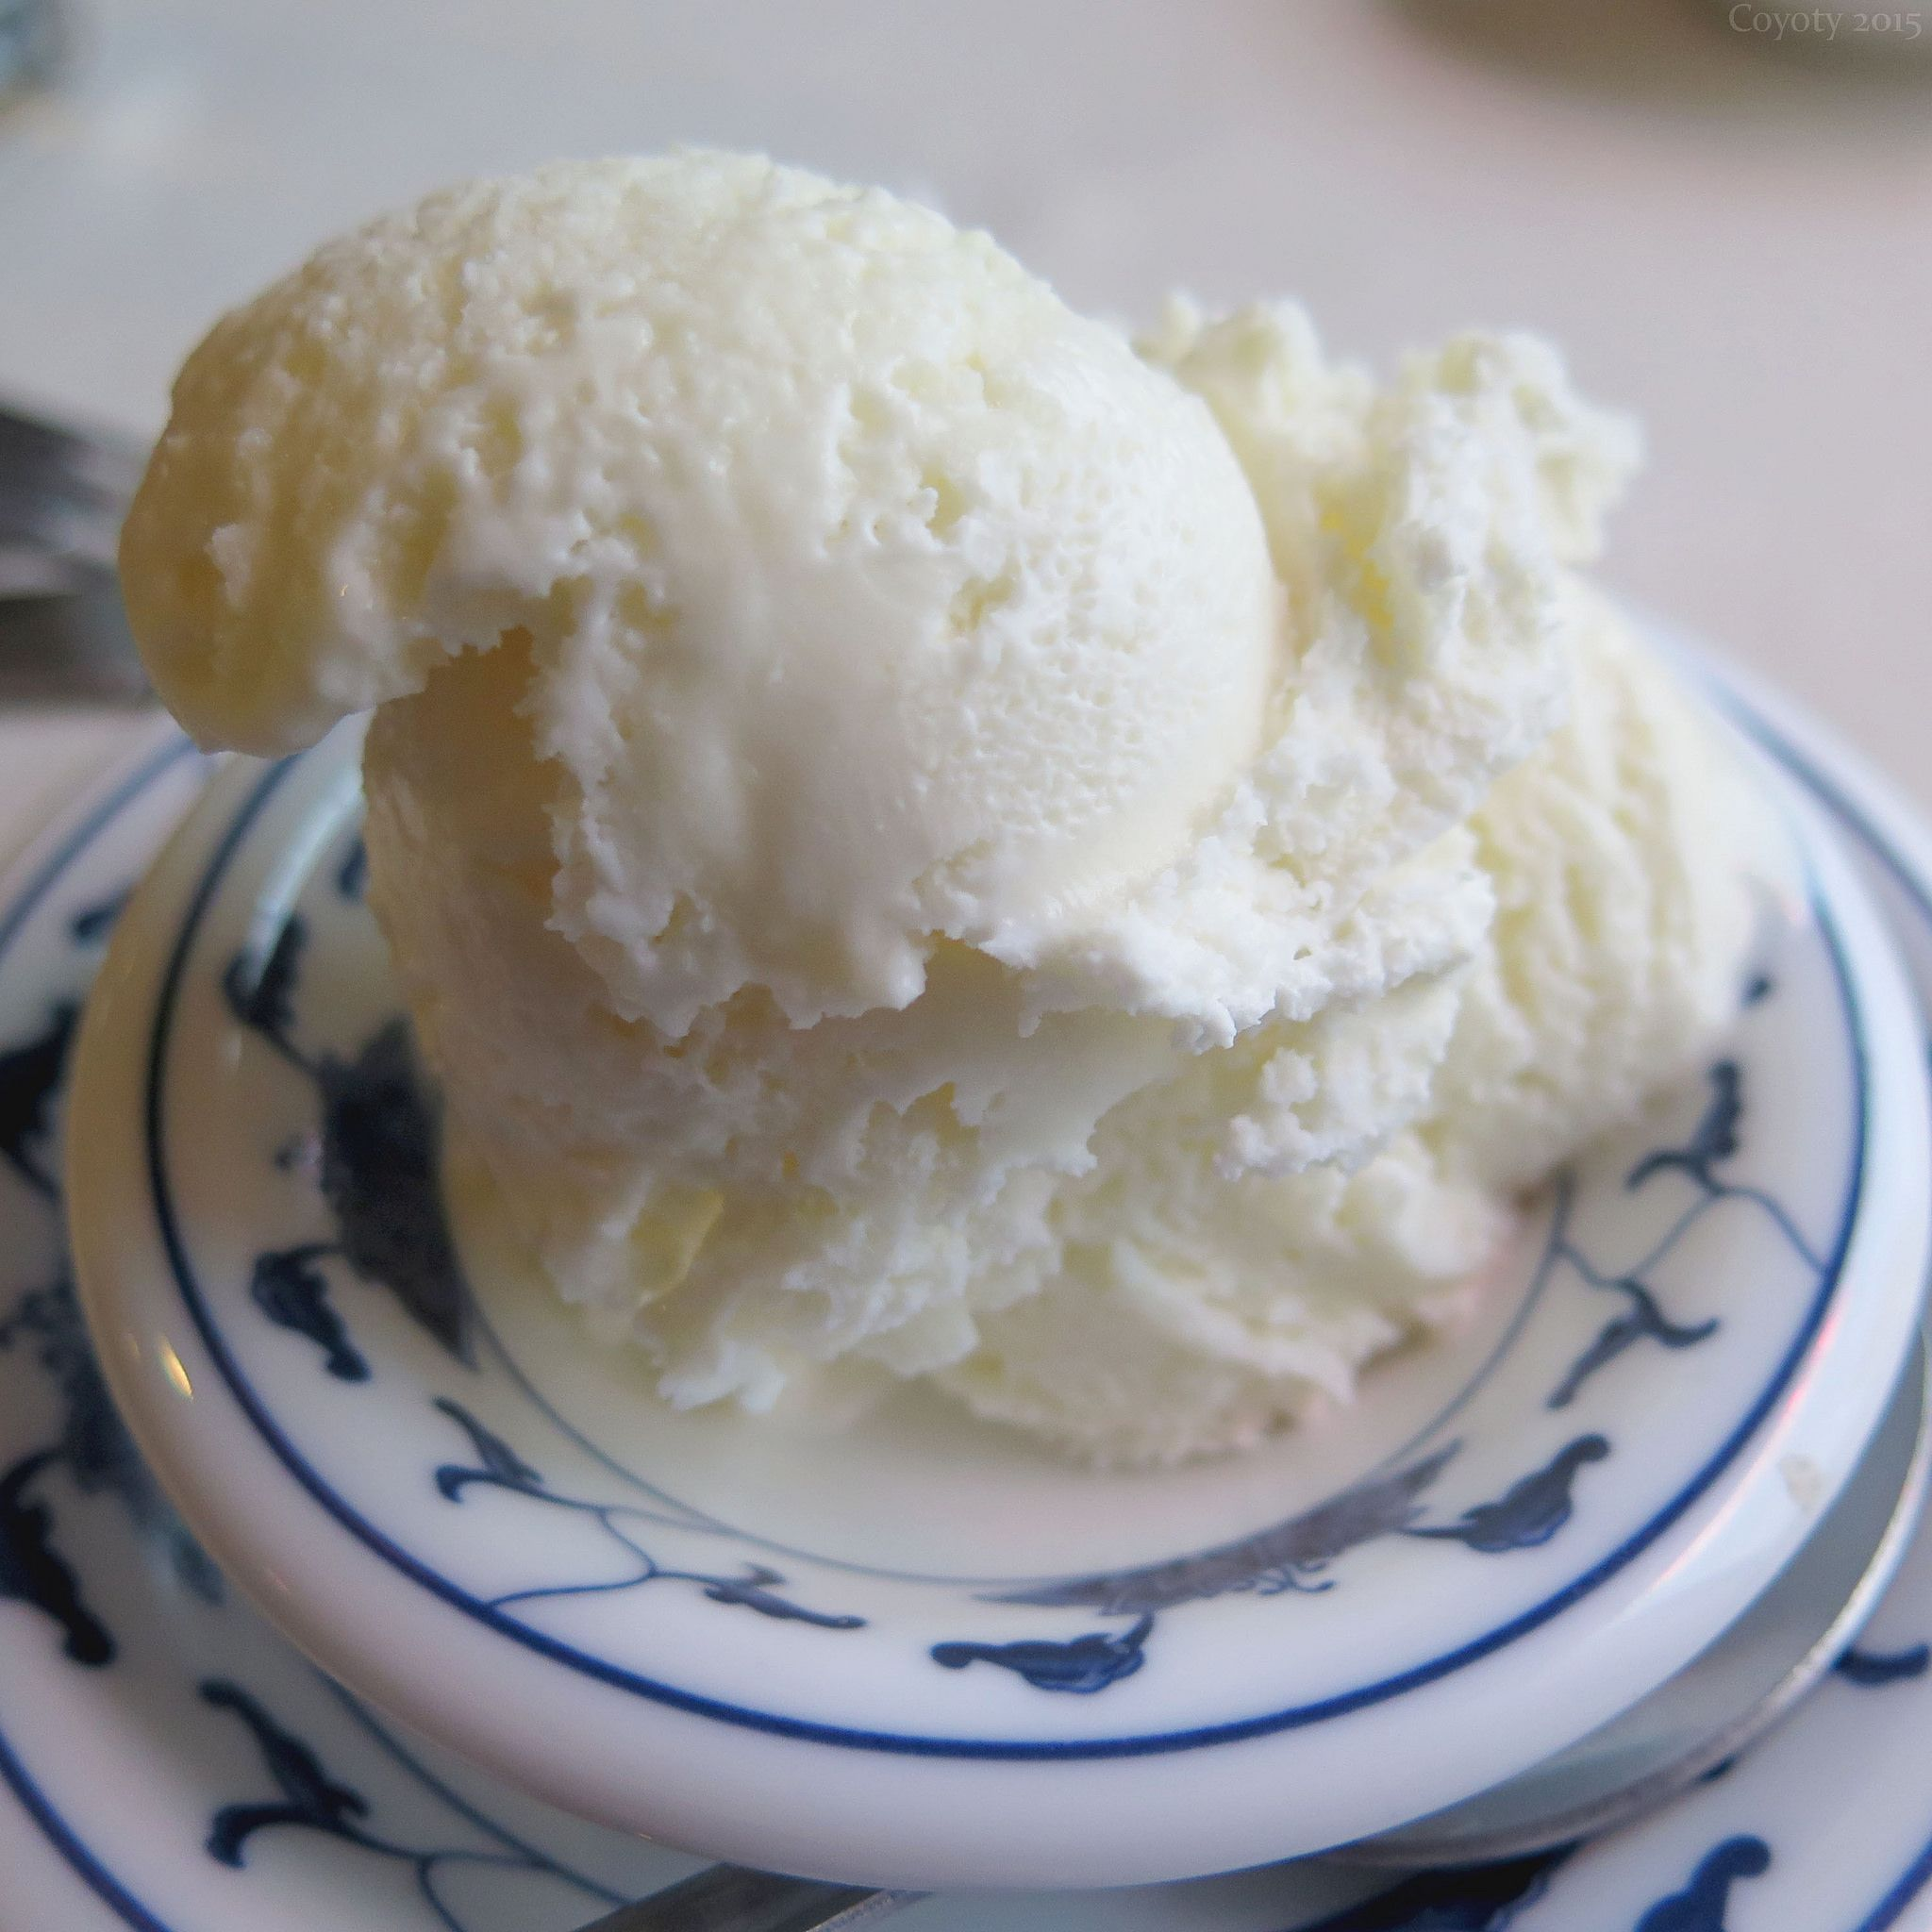 https://flic.kr/p/ChwBzc | Coconut ice cream | At Wang Chinese Restaurant in Cromwell, CT.